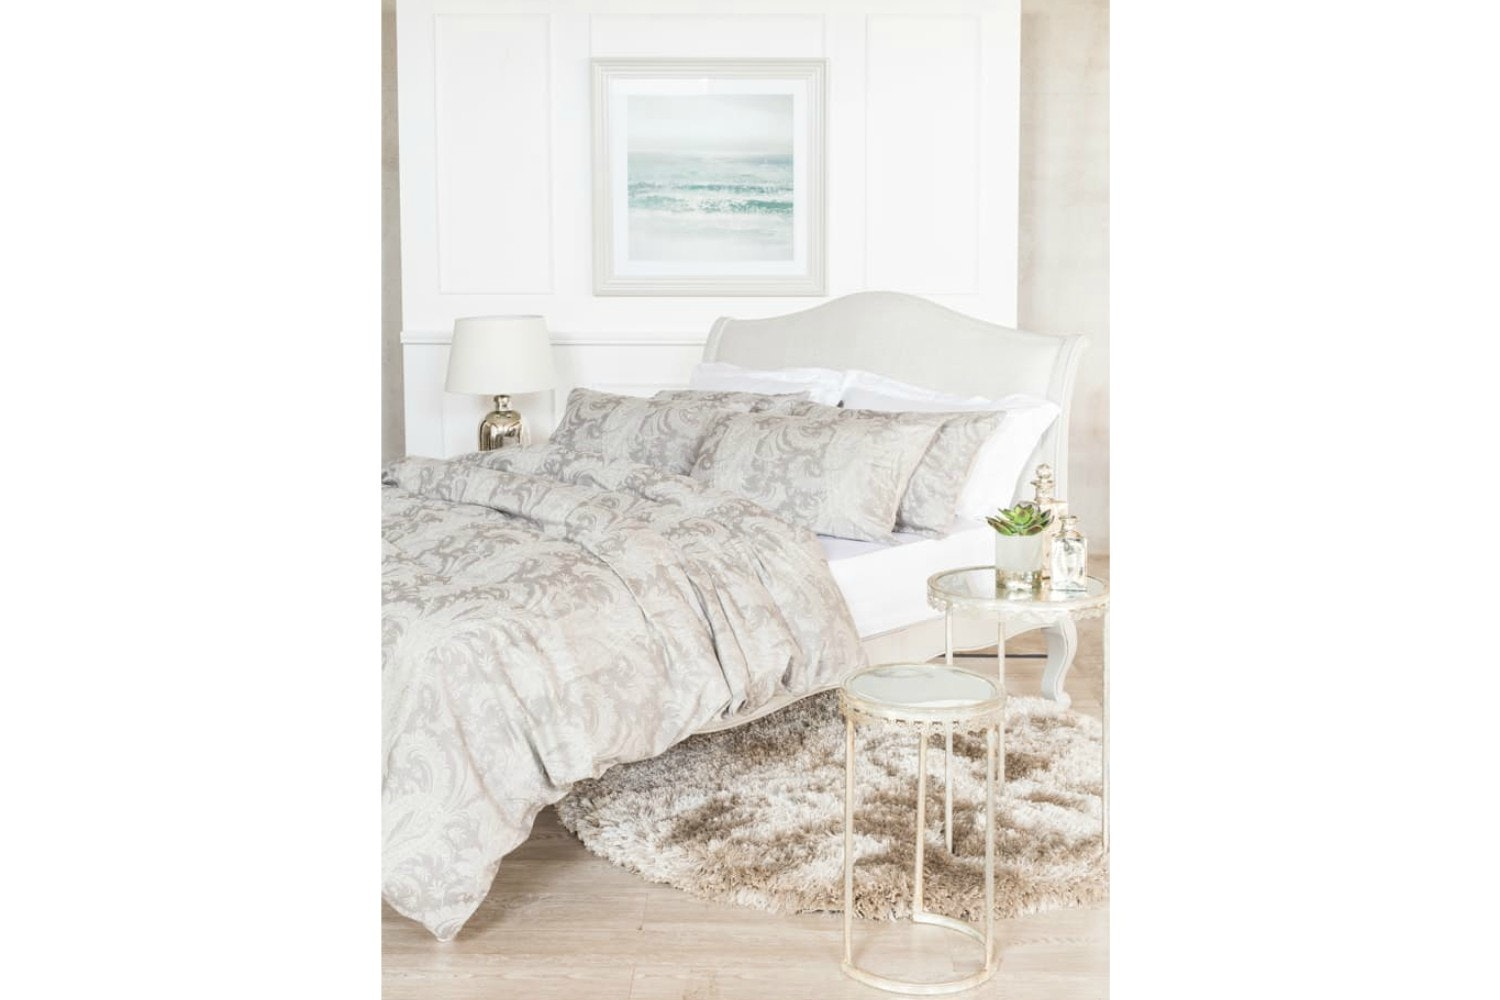 The Linen Room Damask Duvet Cover Set | Super King